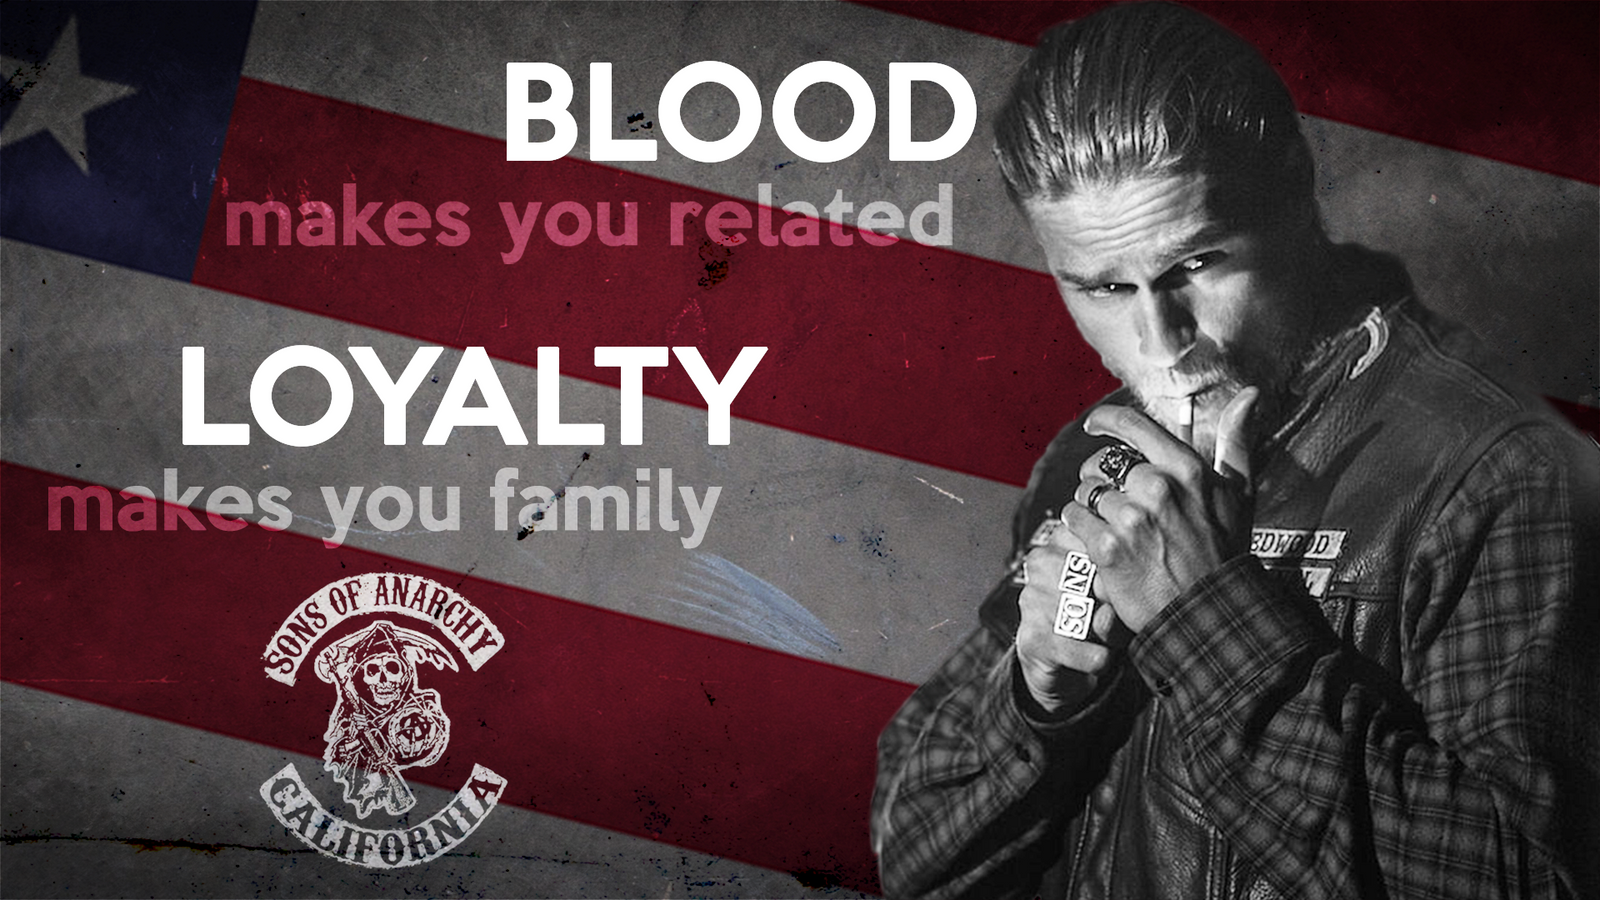 Blood Makes You Related, Loyalty Makes You Family By So4t